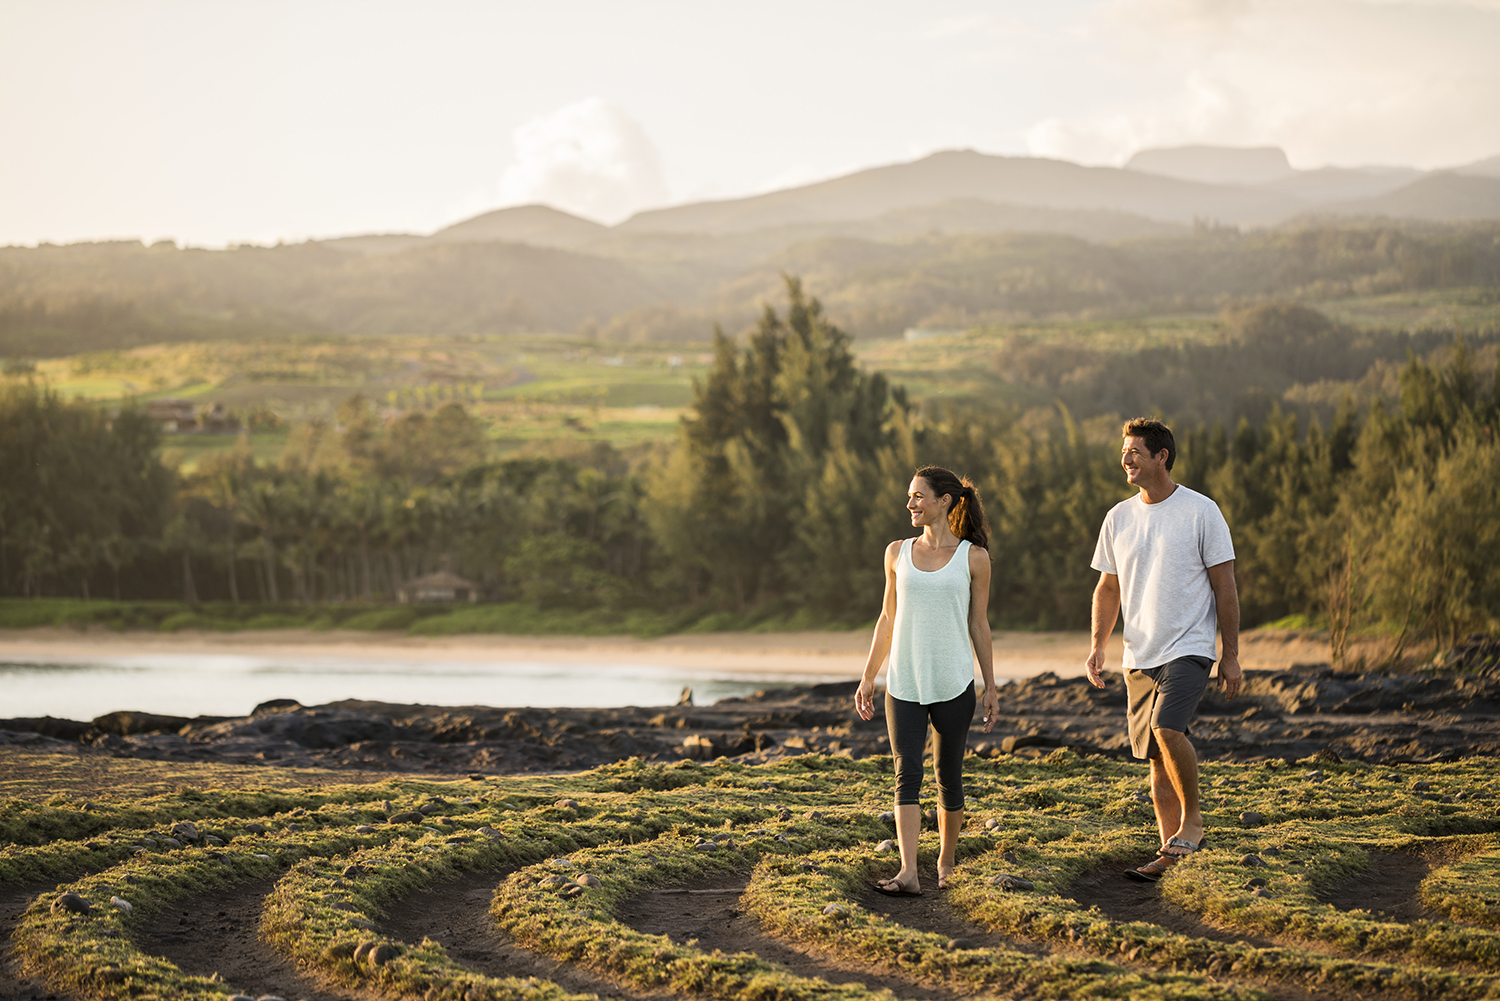 The Ritz-Carlton Kapalua Partners with Wellness Experts for Retreat, Dec. 7-9